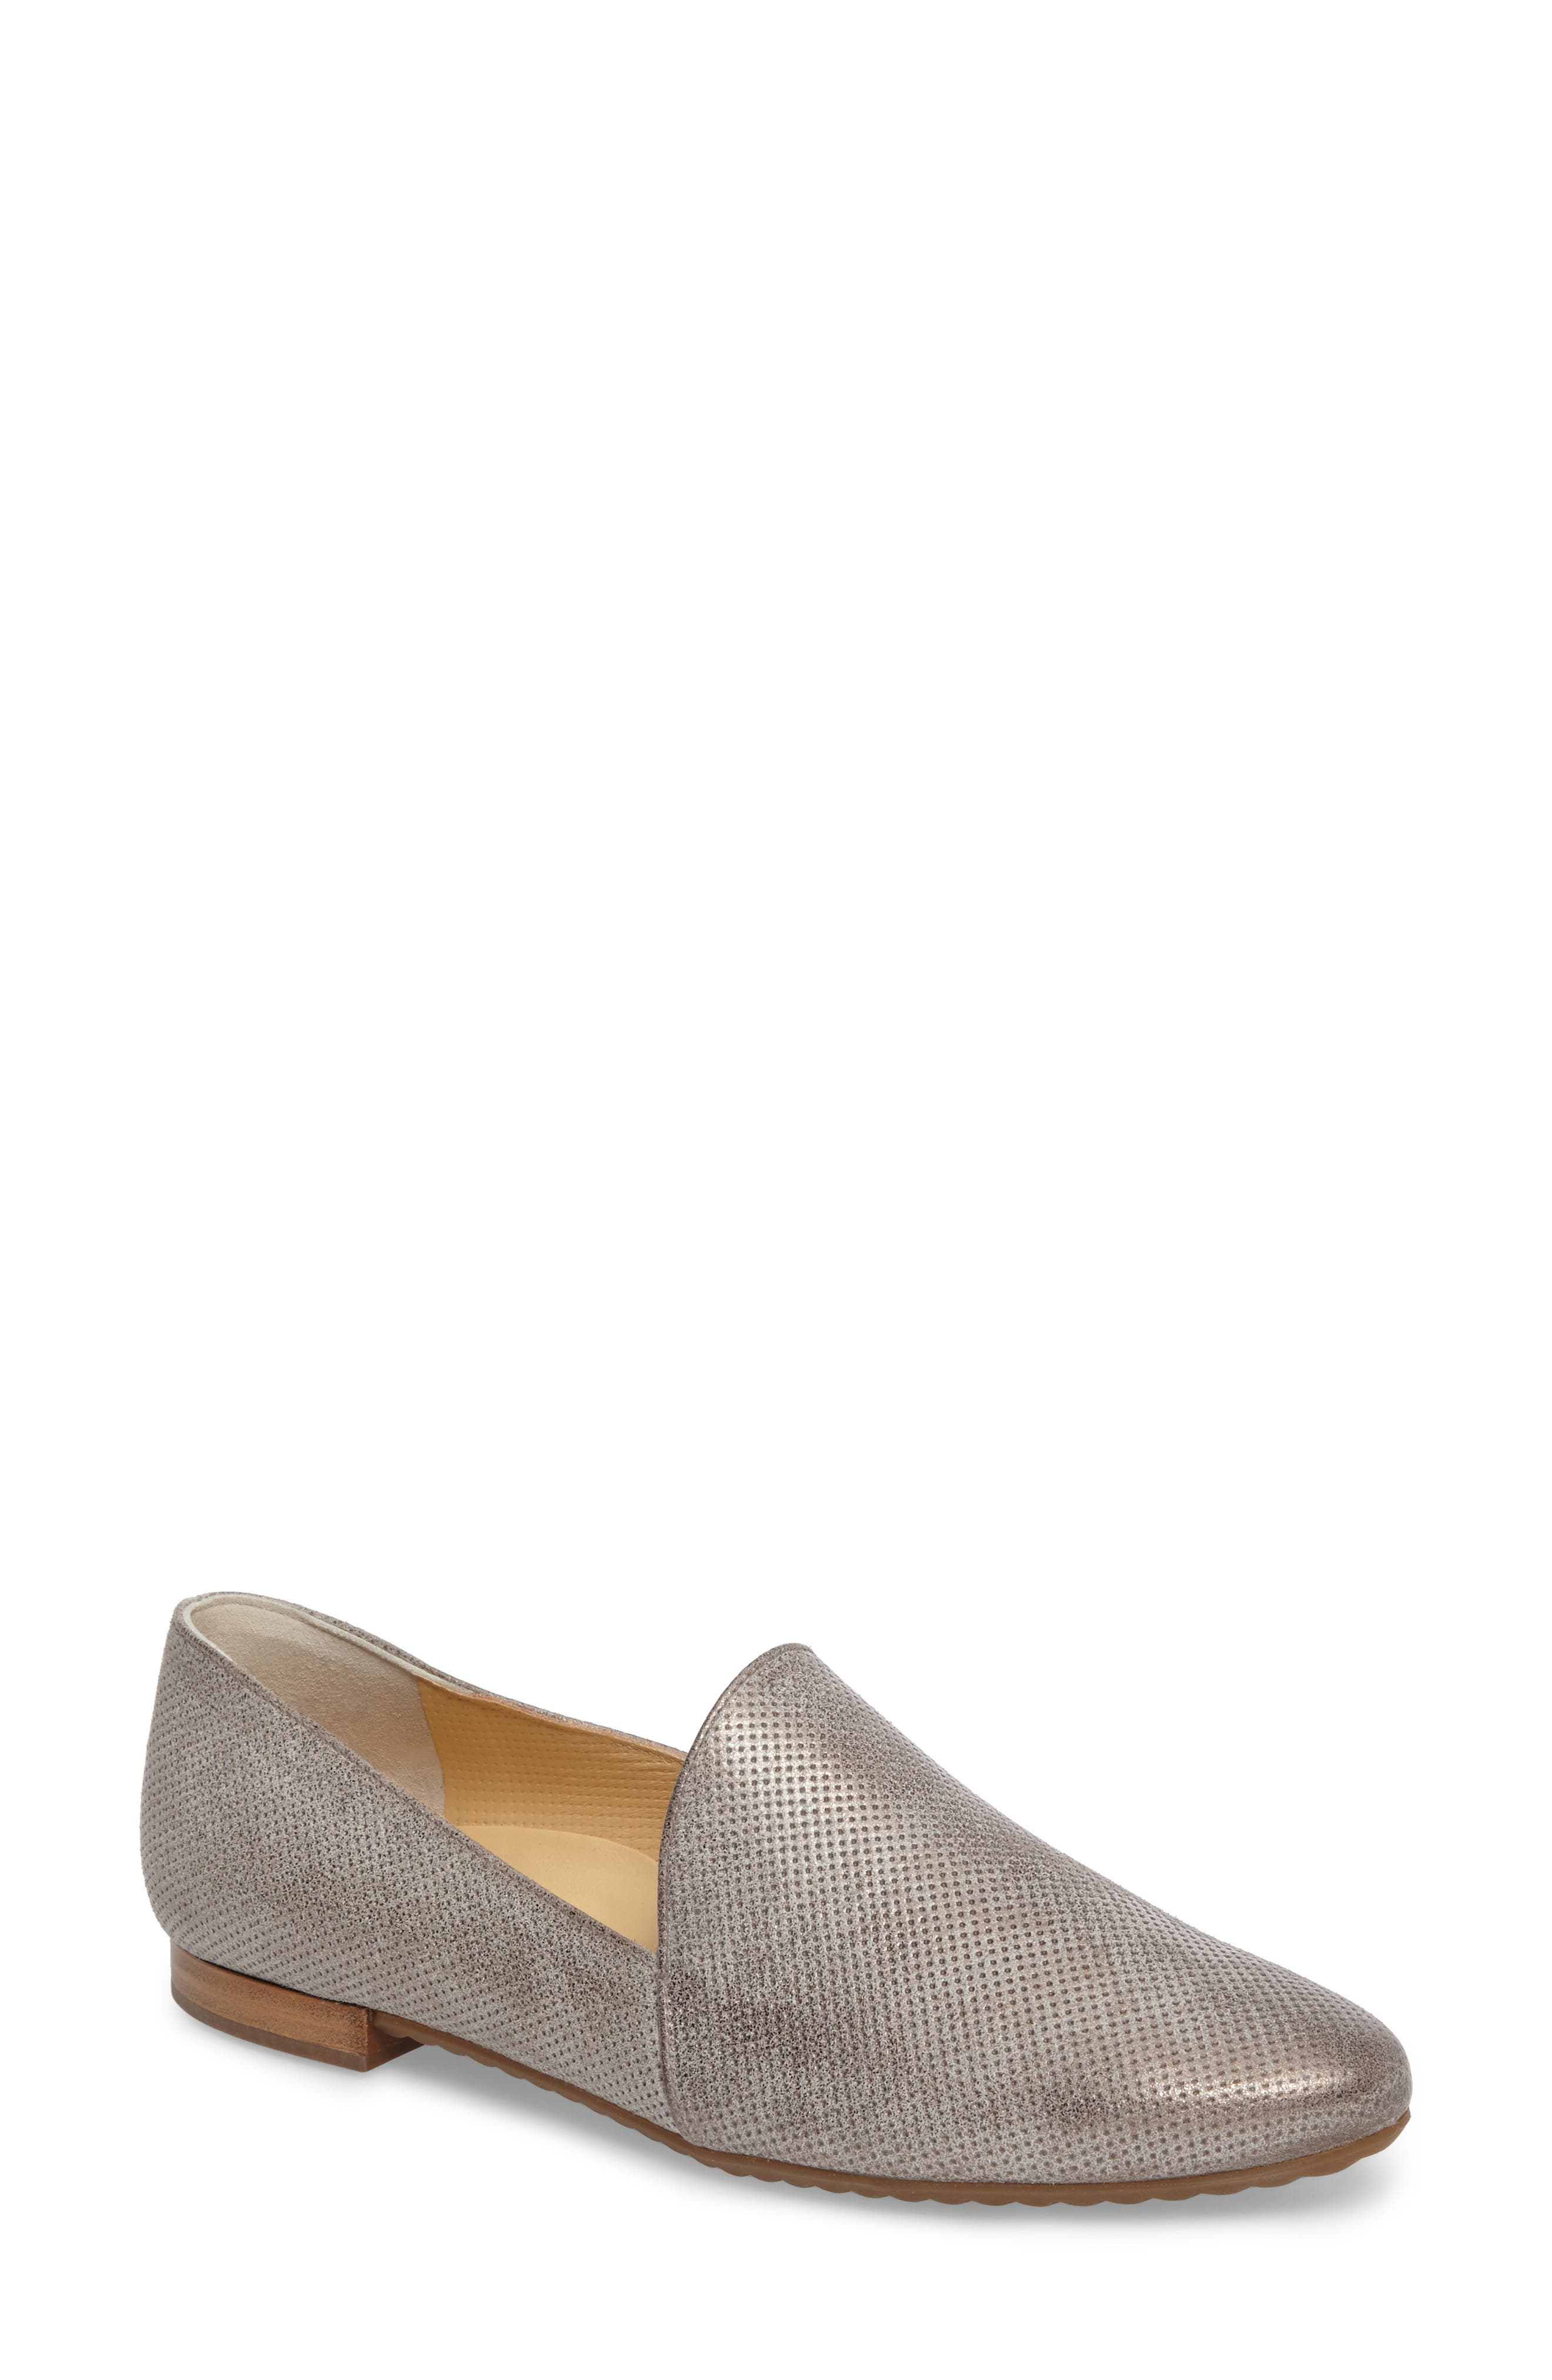 Main Image - Paul Green Naomi Loafer (Women)